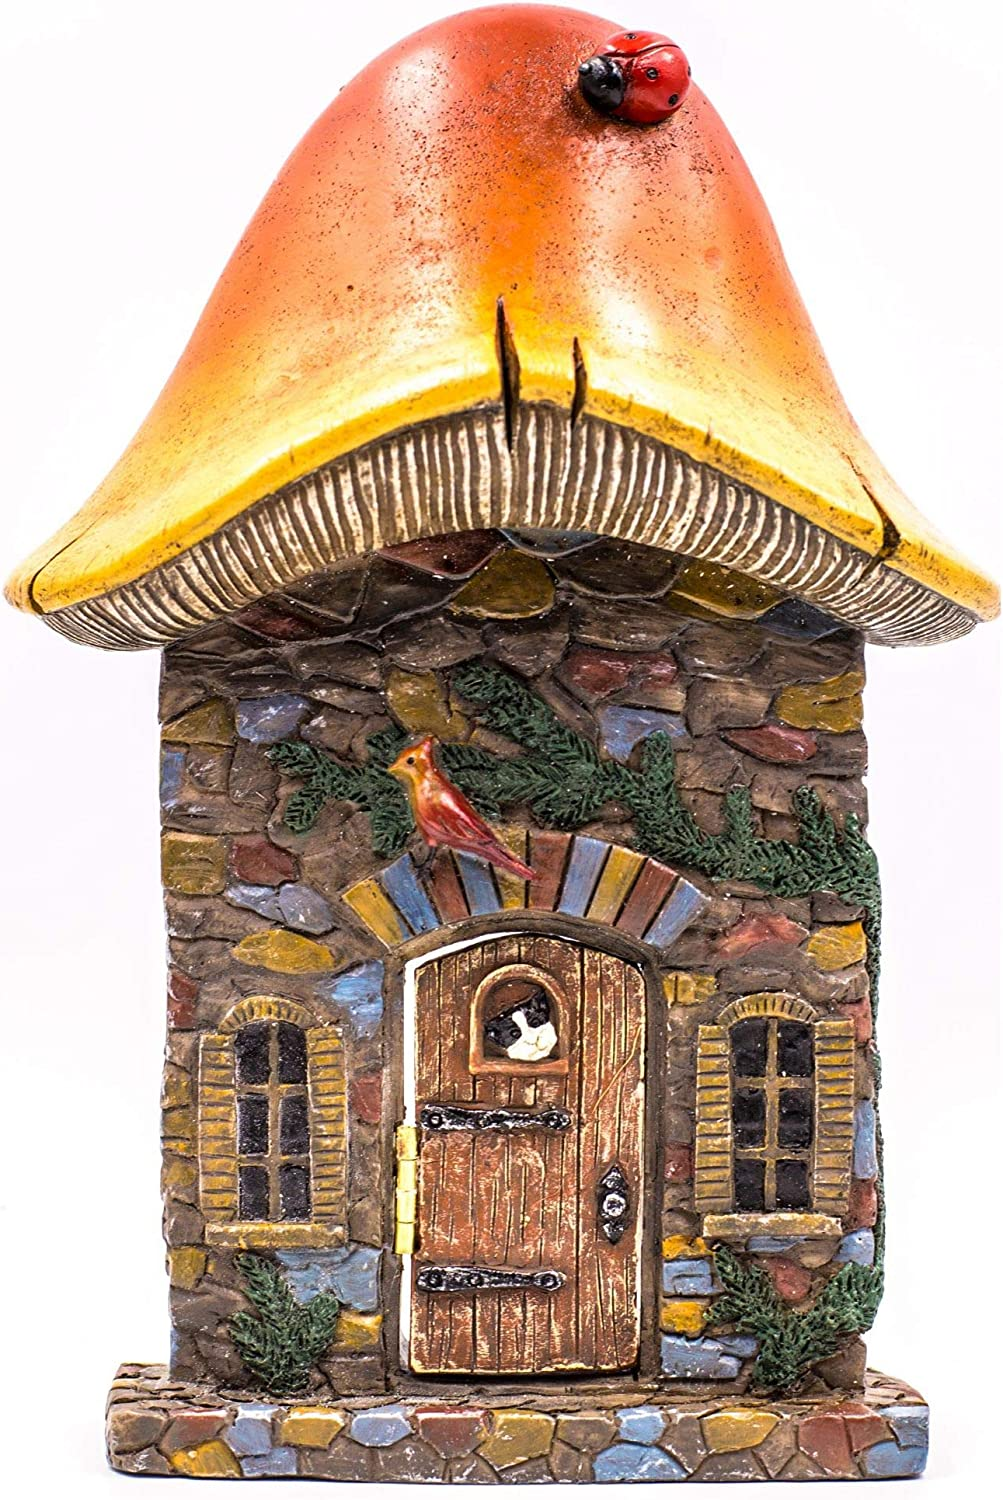 Miniature Fairy Garden Houses, Fairies, Figurines, Animals, Kits, Furniture, and Supplies (Mushroom Fairy Door)